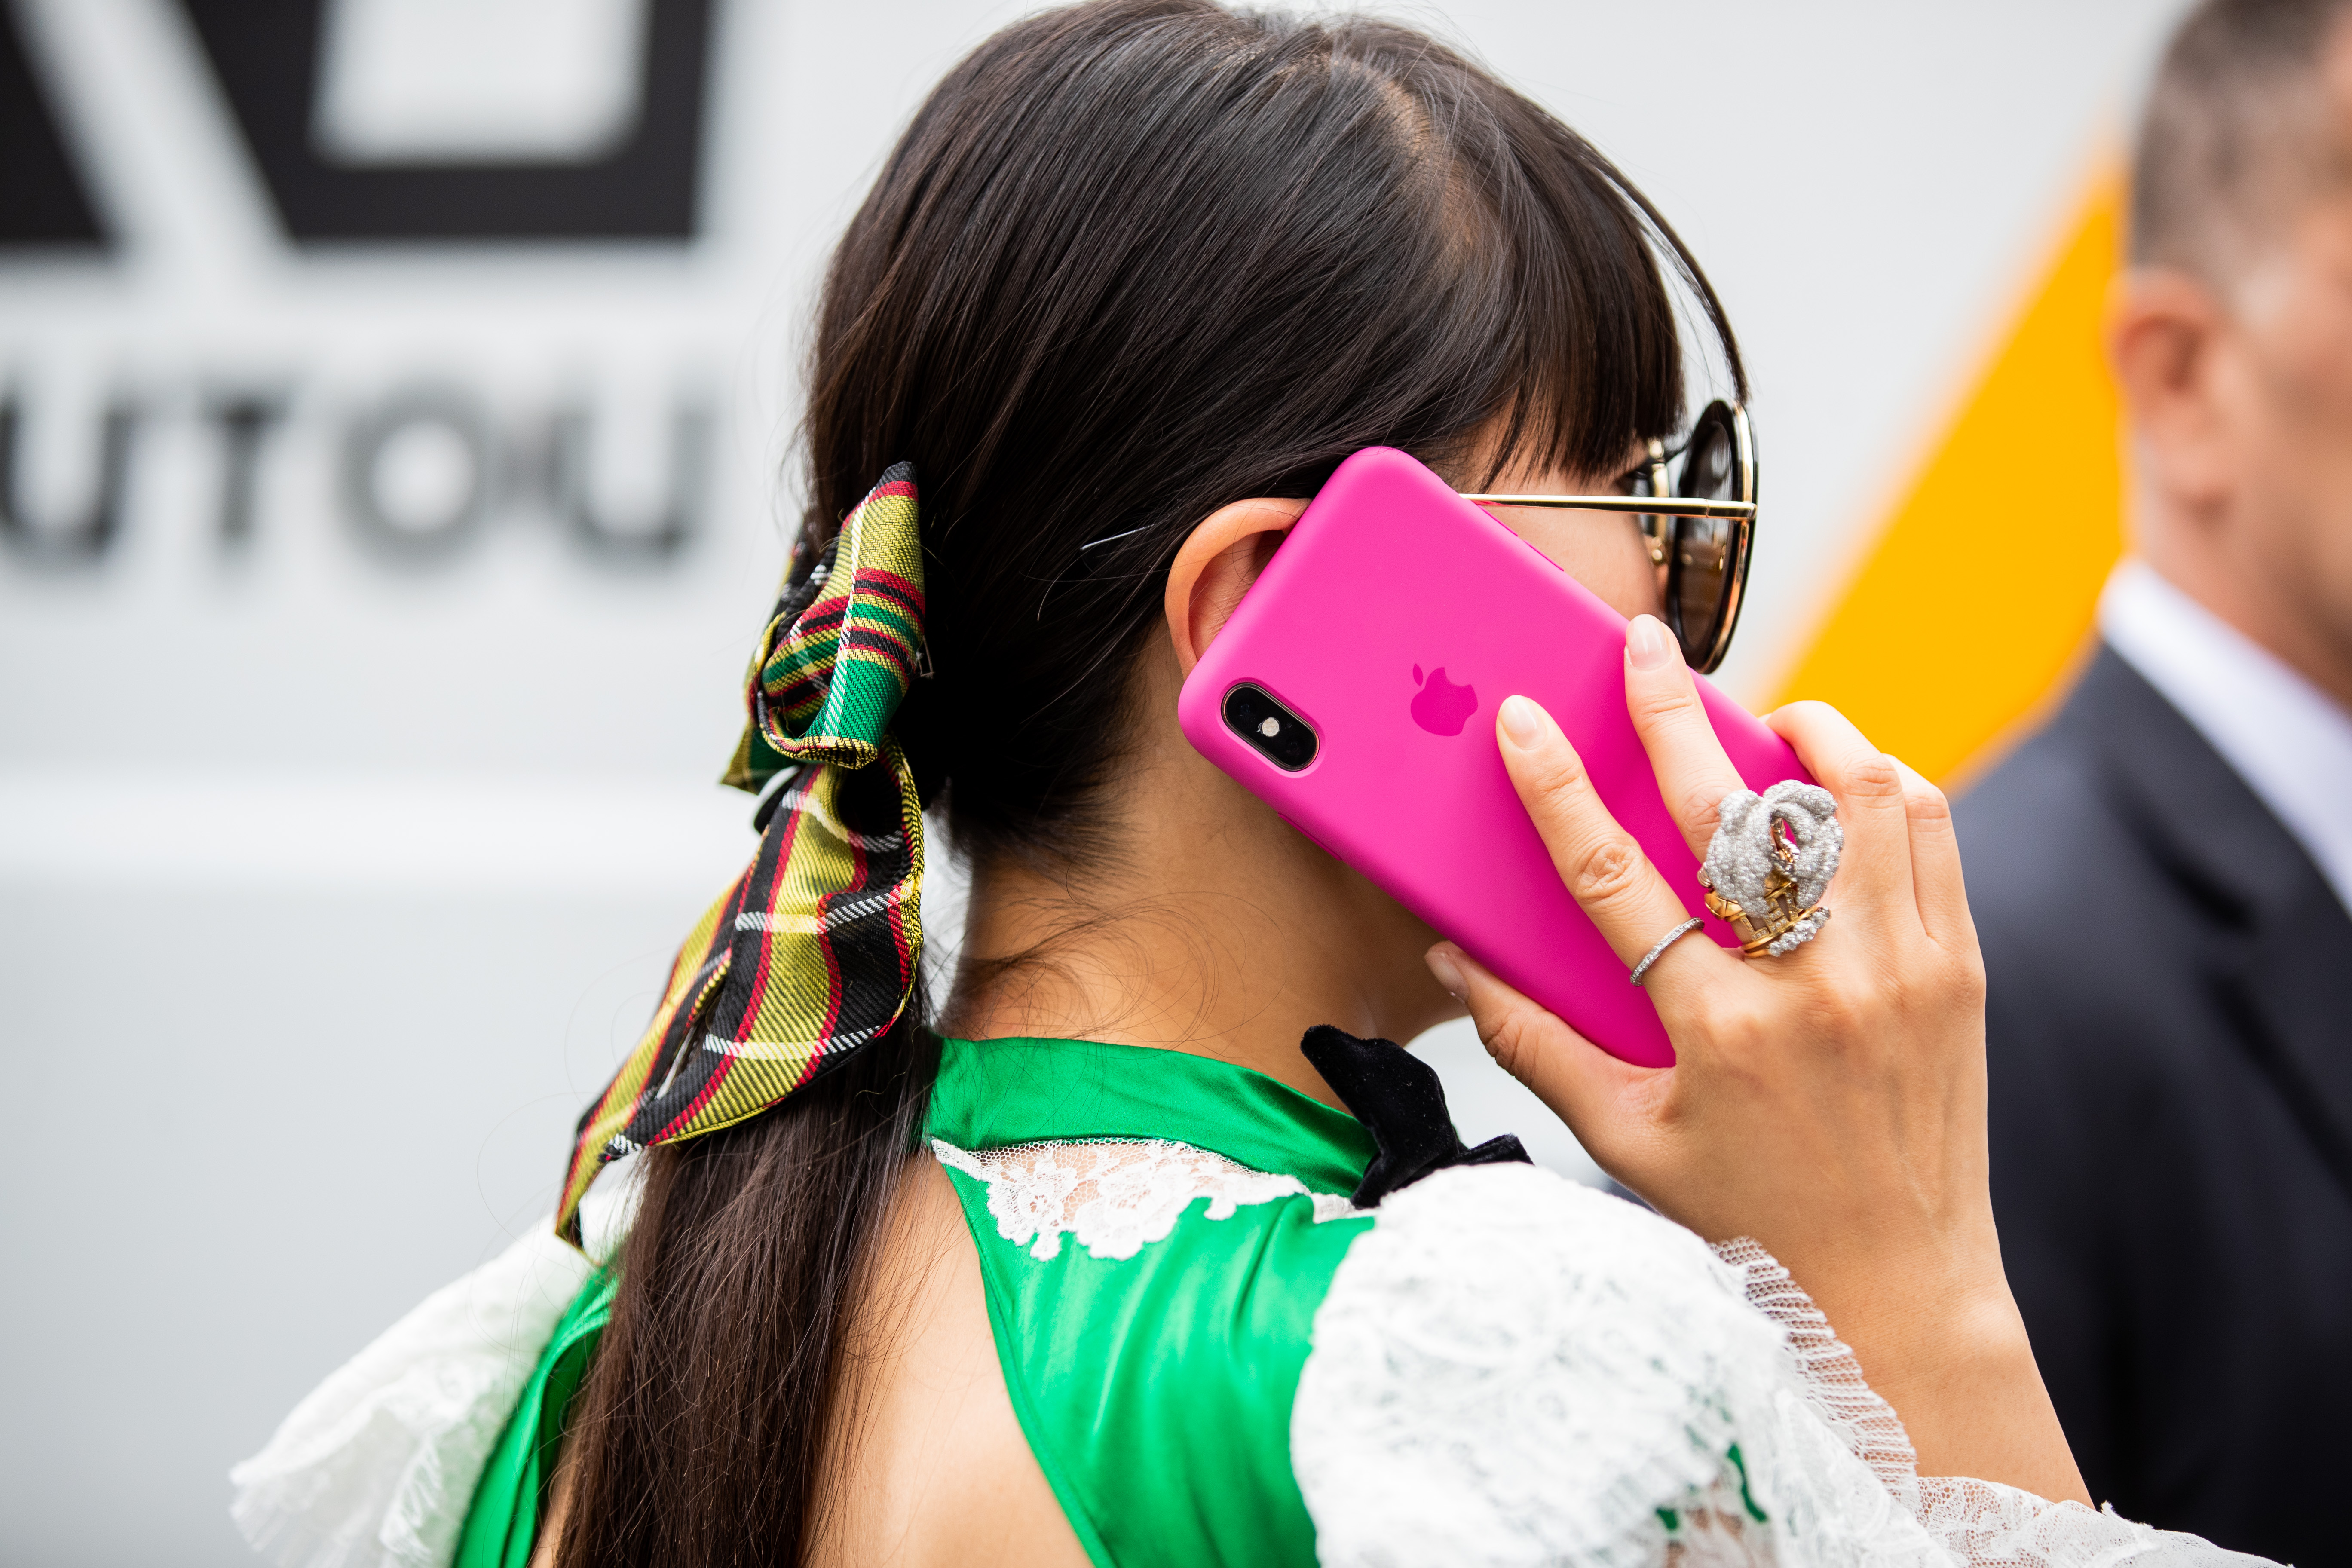 PARIS, FRANCE - JULY 01: Leaf Greener is seen with pink iphone wearing bow tie outside Schiaparelli during Paris Fashion Week - Haute Couture Fall/Winter 2019/2020 on July 01, 2019 in Paris, France. (Photo by )